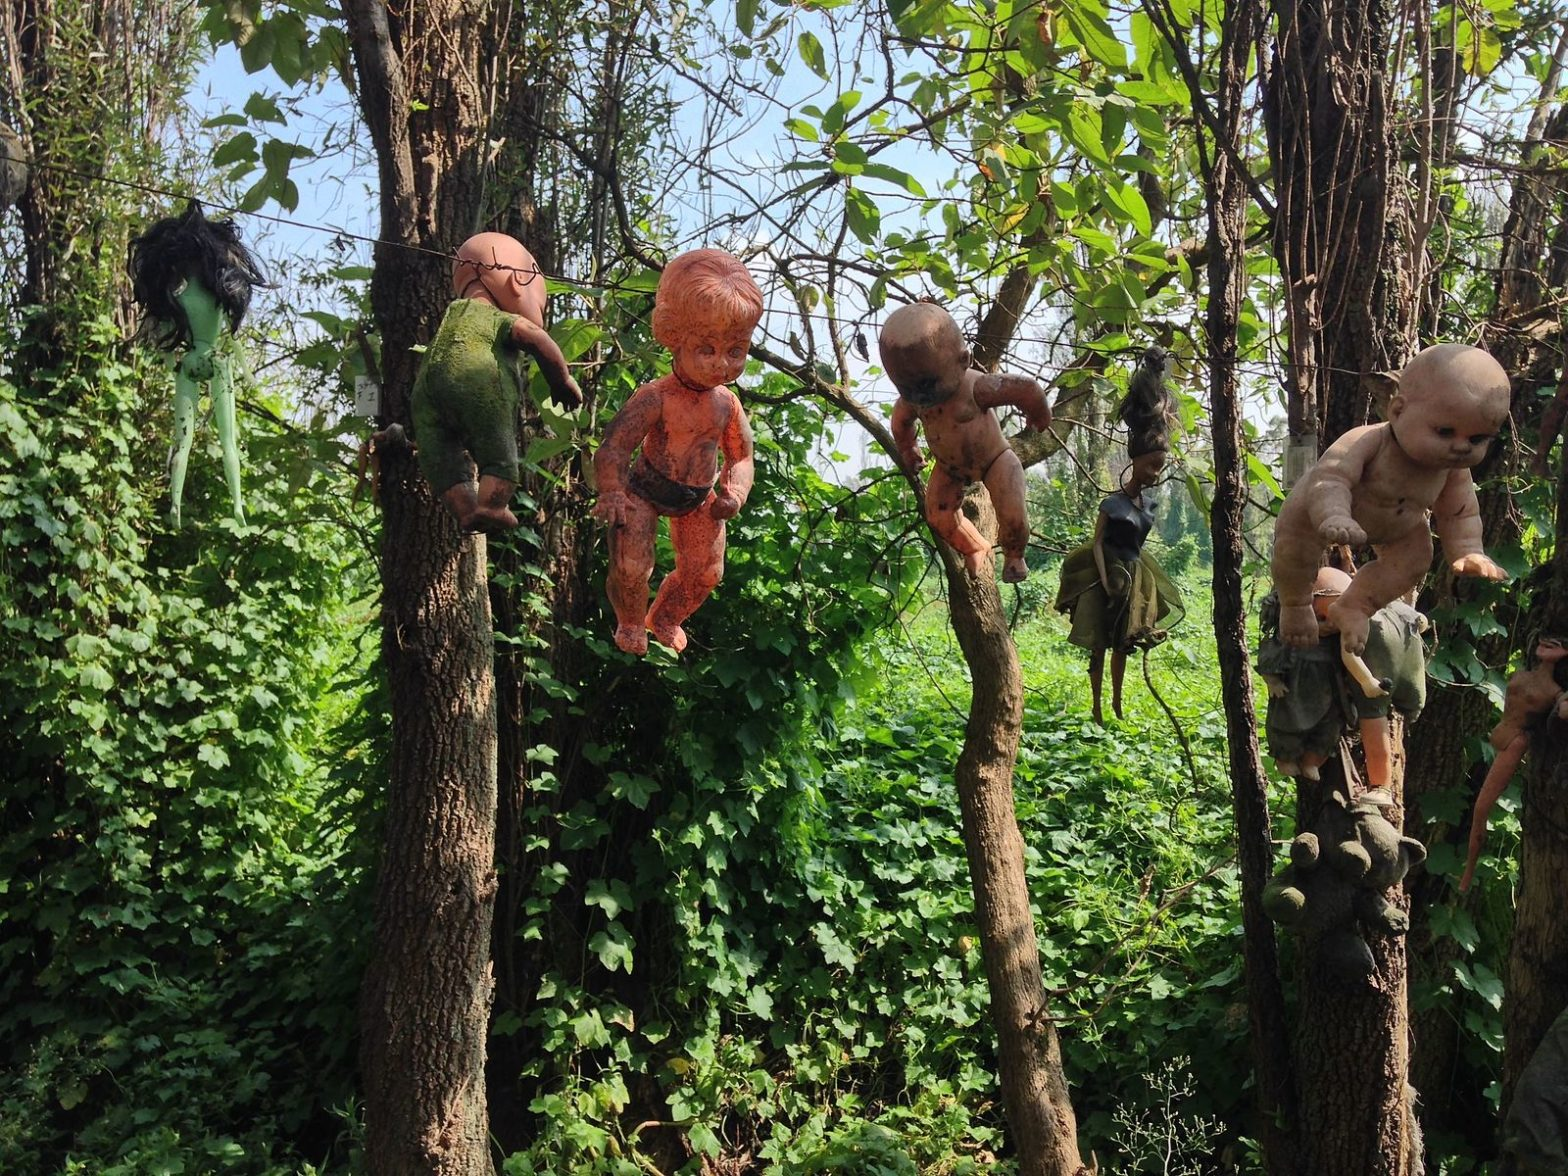 Island of the Dolls in Mexico | A Suspense Horror Mystery – Jeremy Bates Books